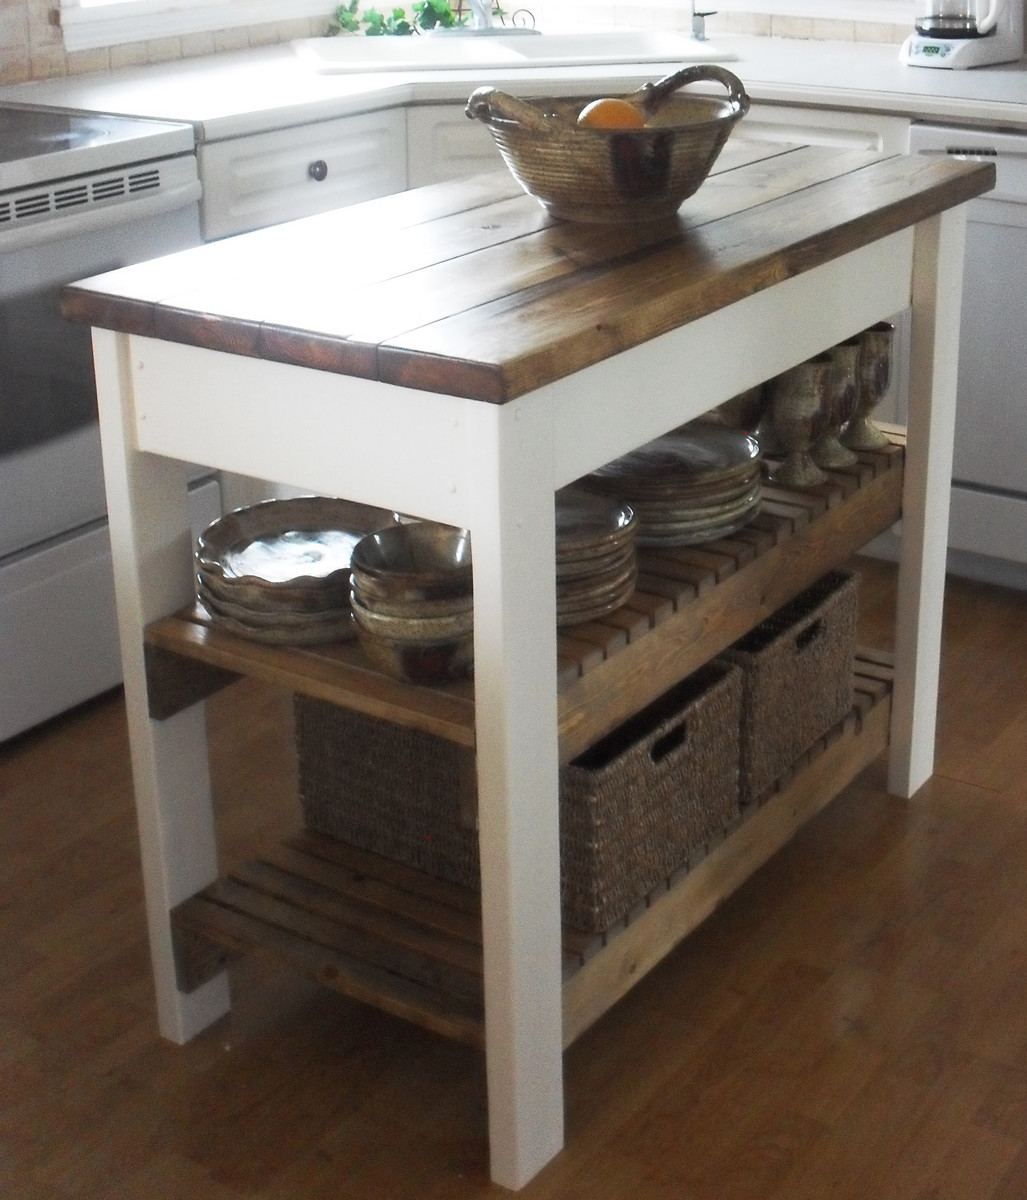 Build kitchen island table - Ana White Kitchen Island Diy Projects Ana White Kitchen Island Diy